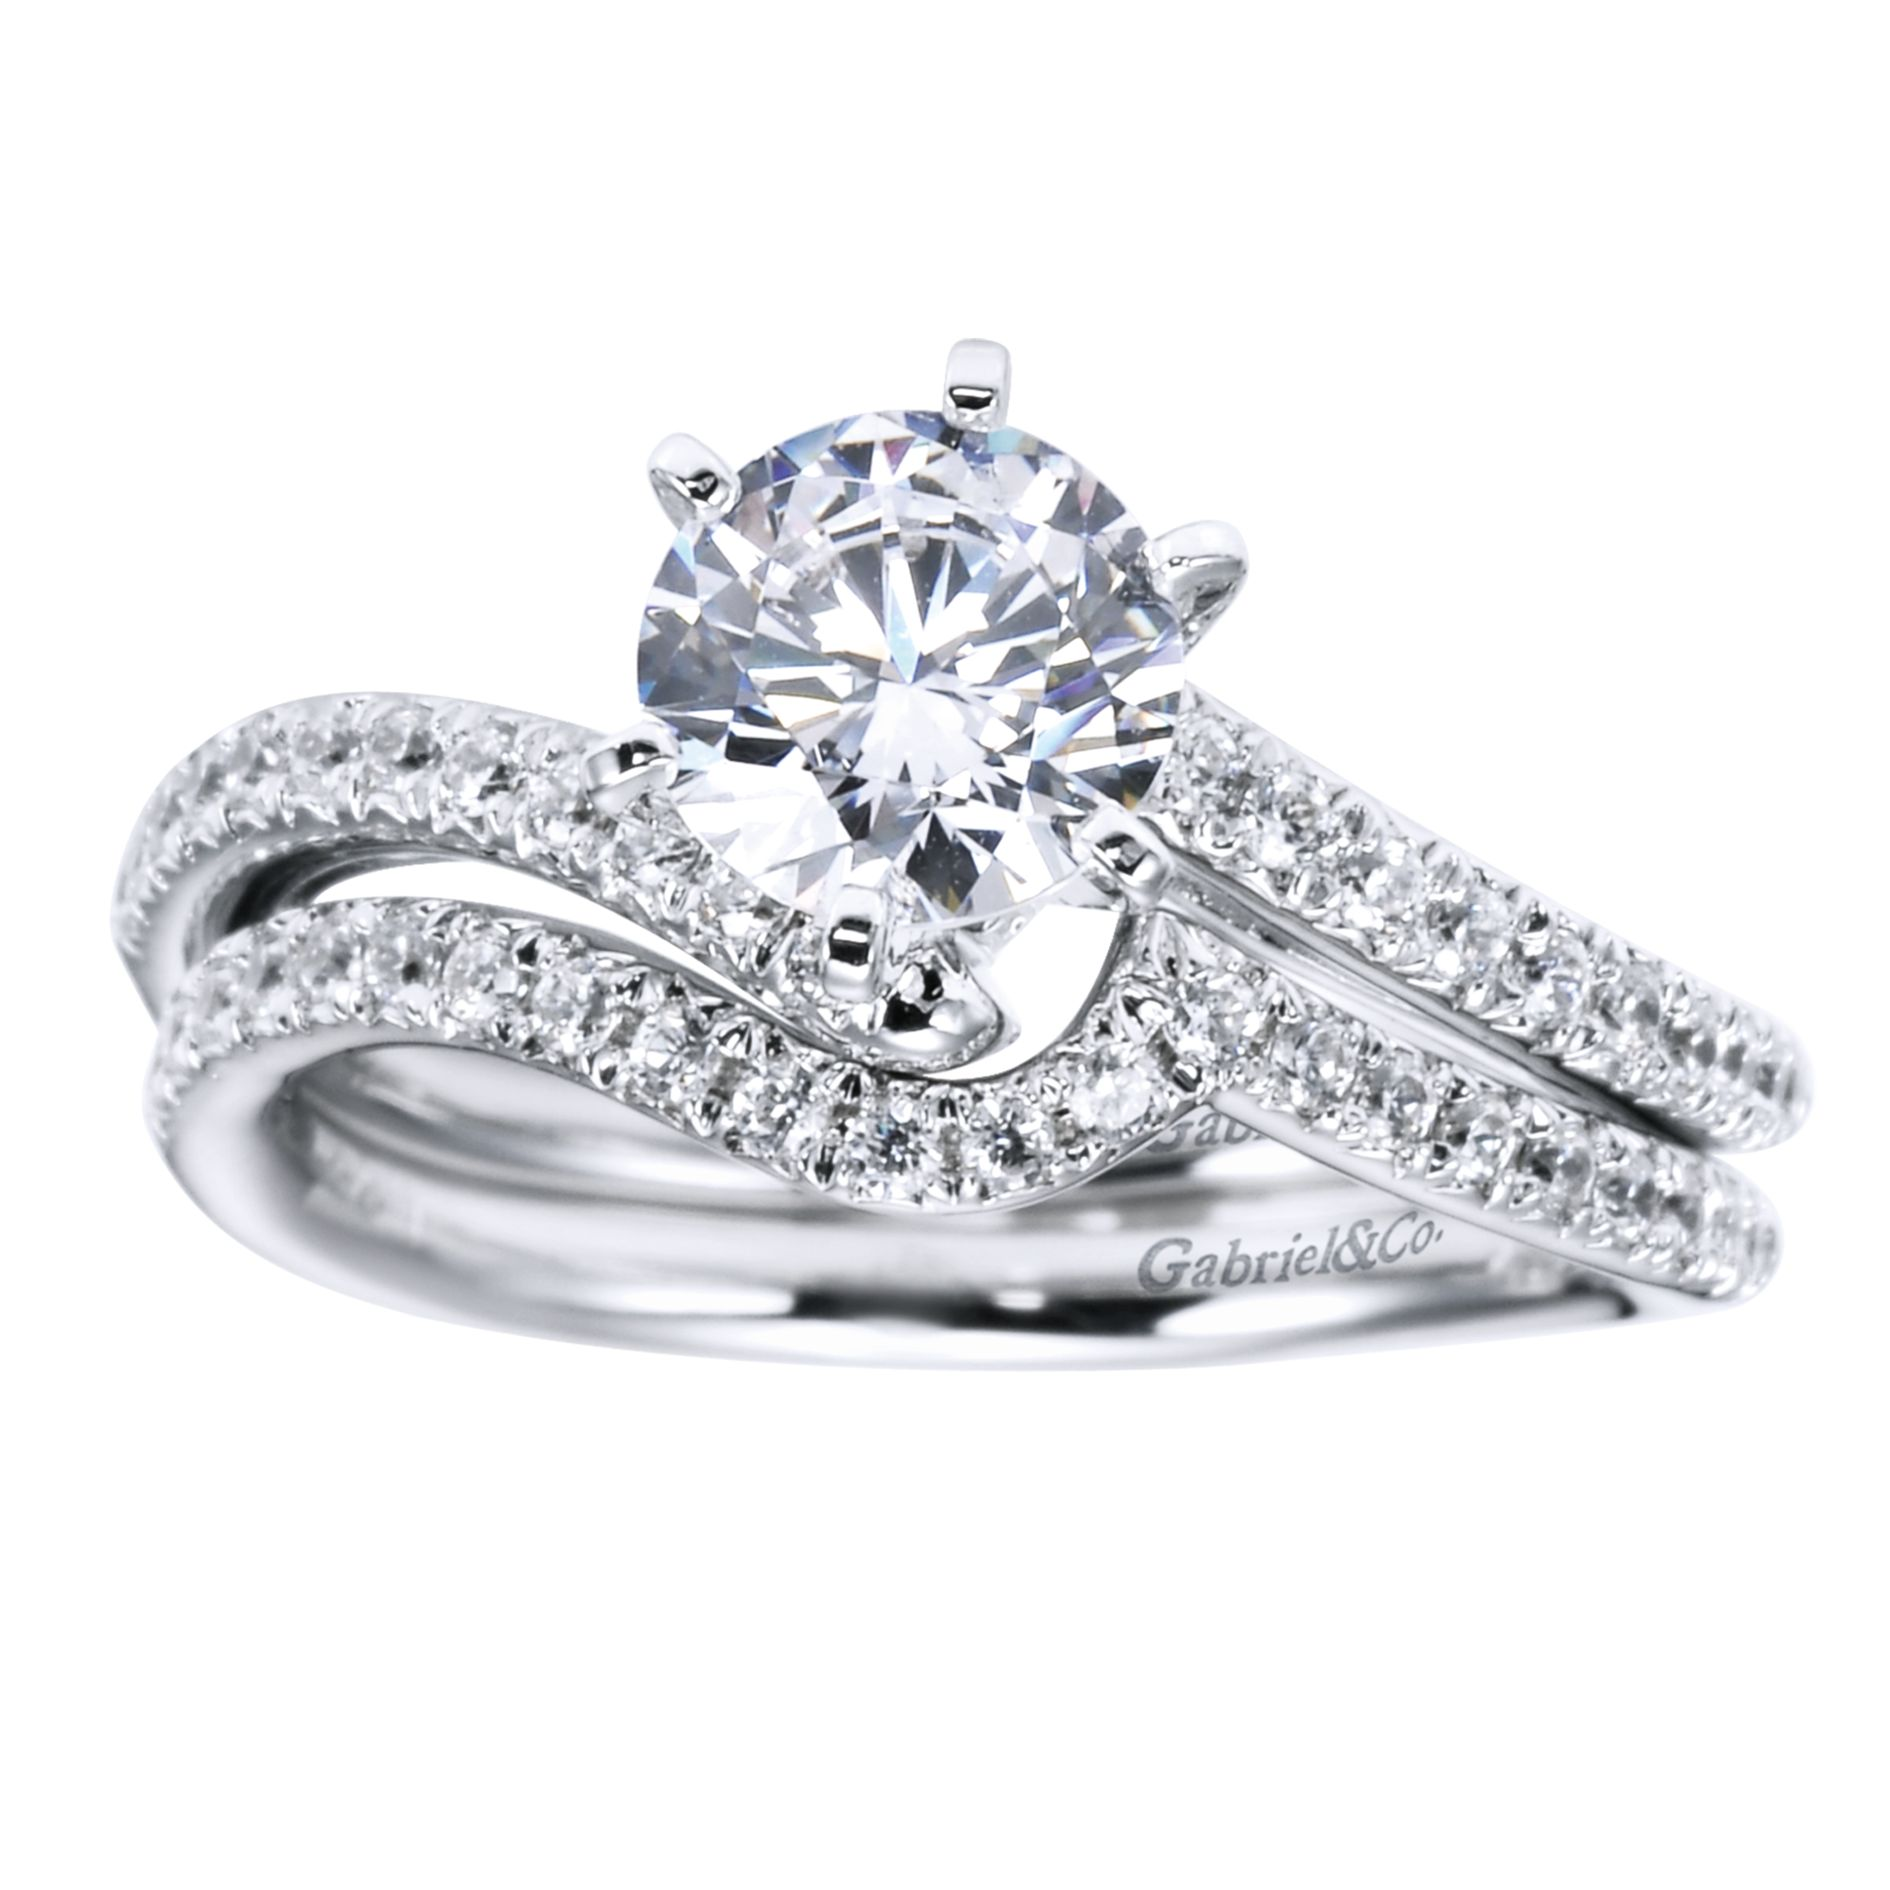 Engagement Rings - WHITE GOLD ROUND BYPASS DIAMOND ENGAGEMENT RING - image #4